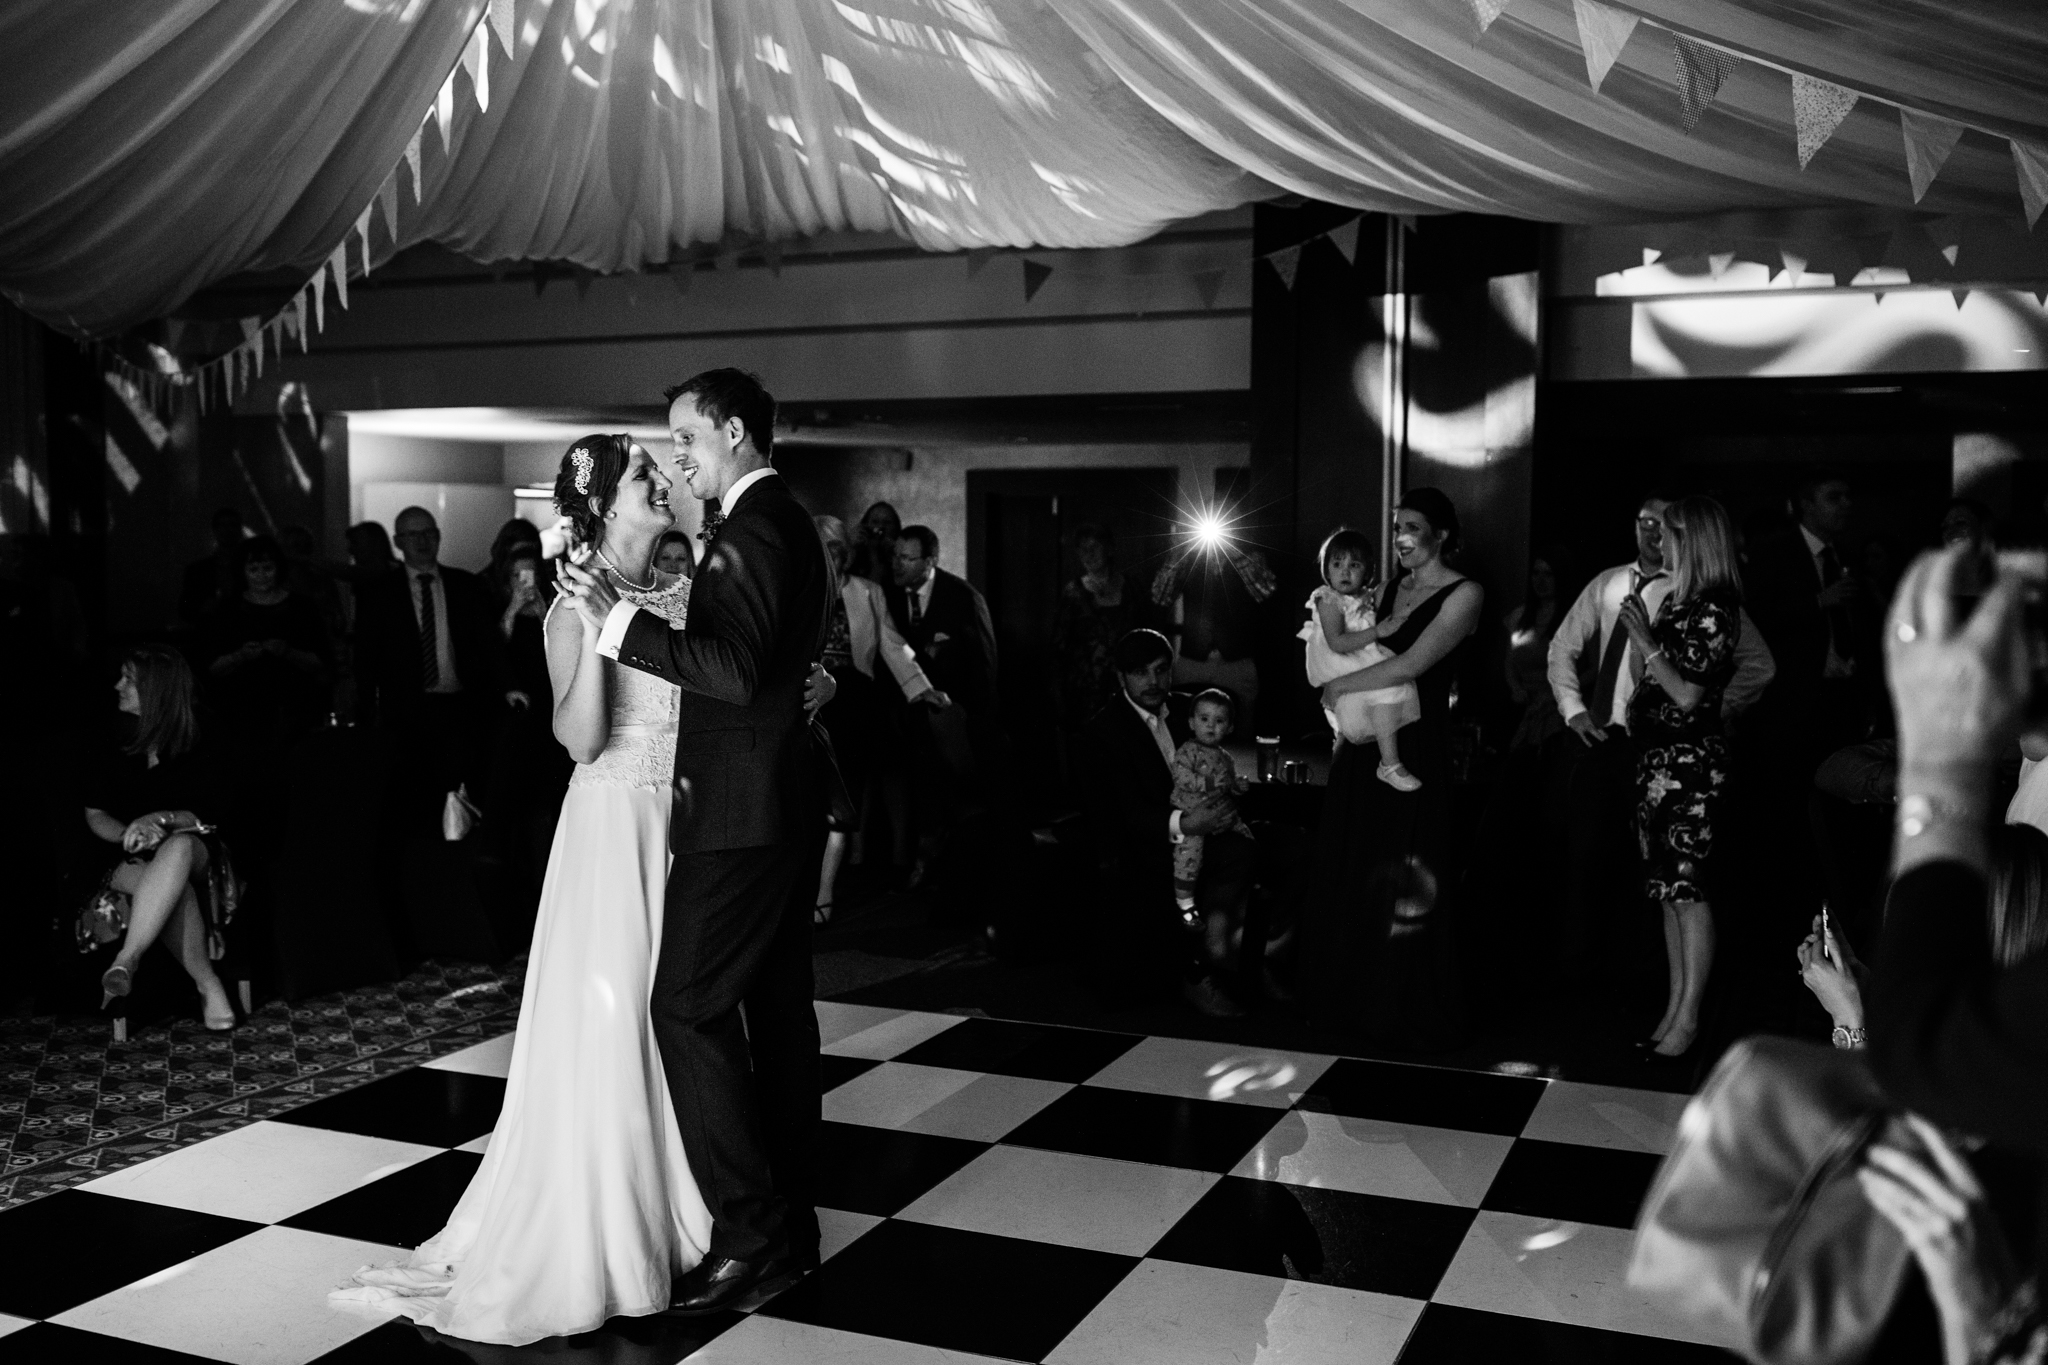 Sam & Becca's Wedding at Norton Park Hotel